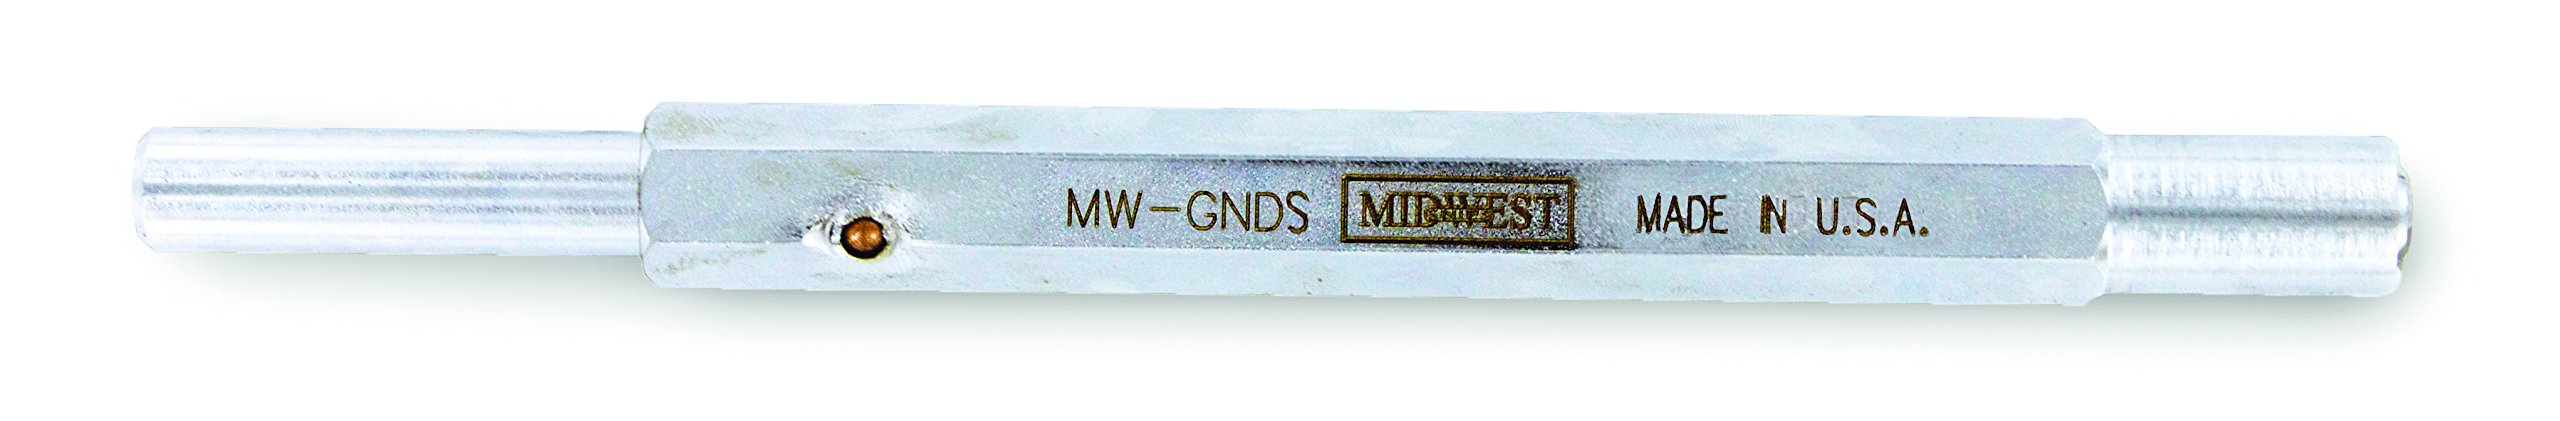 Midwest Tool and Cutlery MW-GNDS Gutter Nail Driver with 8 Penny Nails